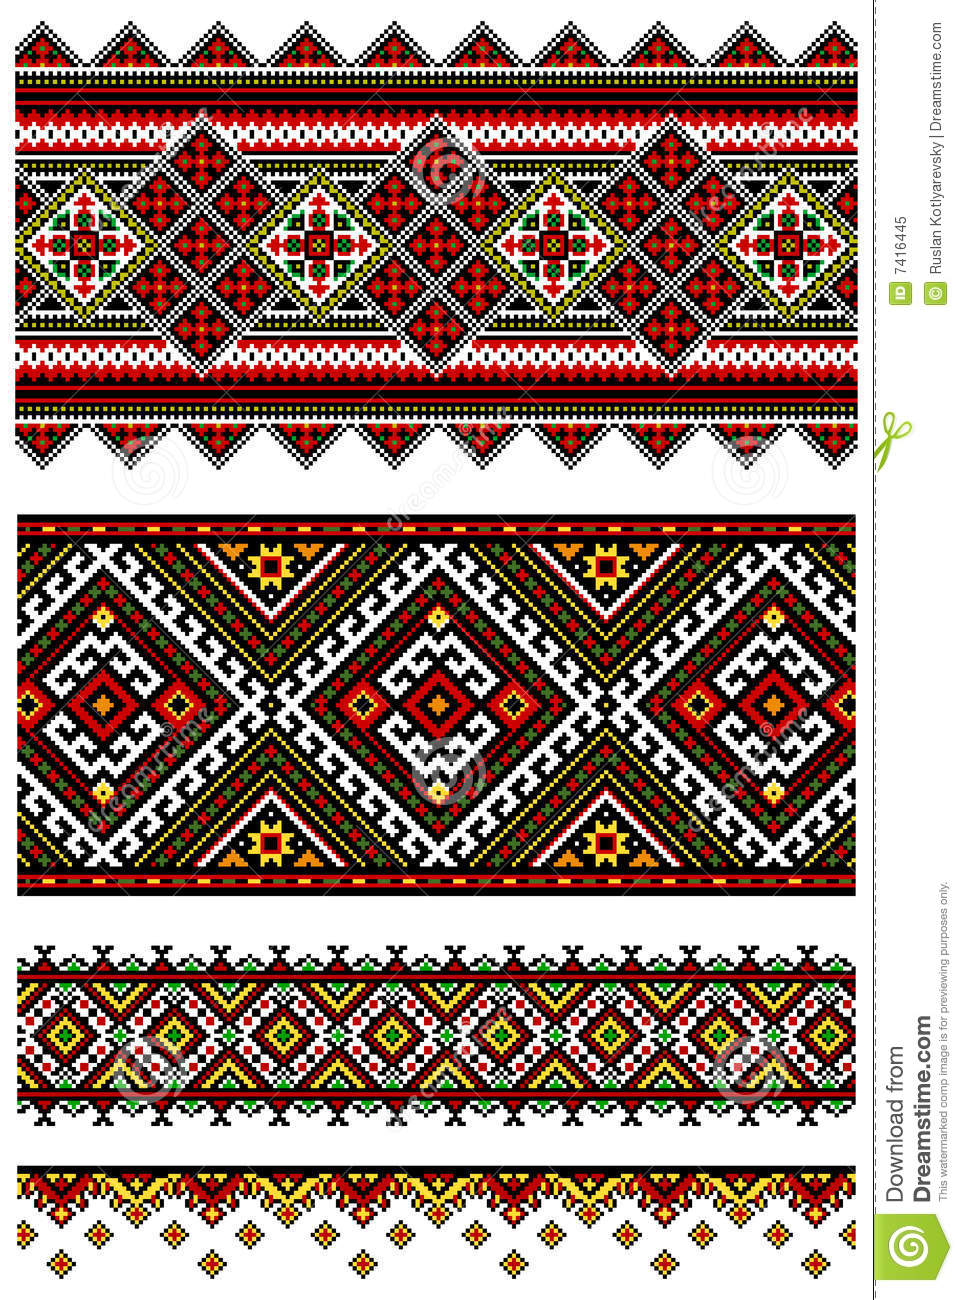 Ukrainian embroidery geometric collection #09